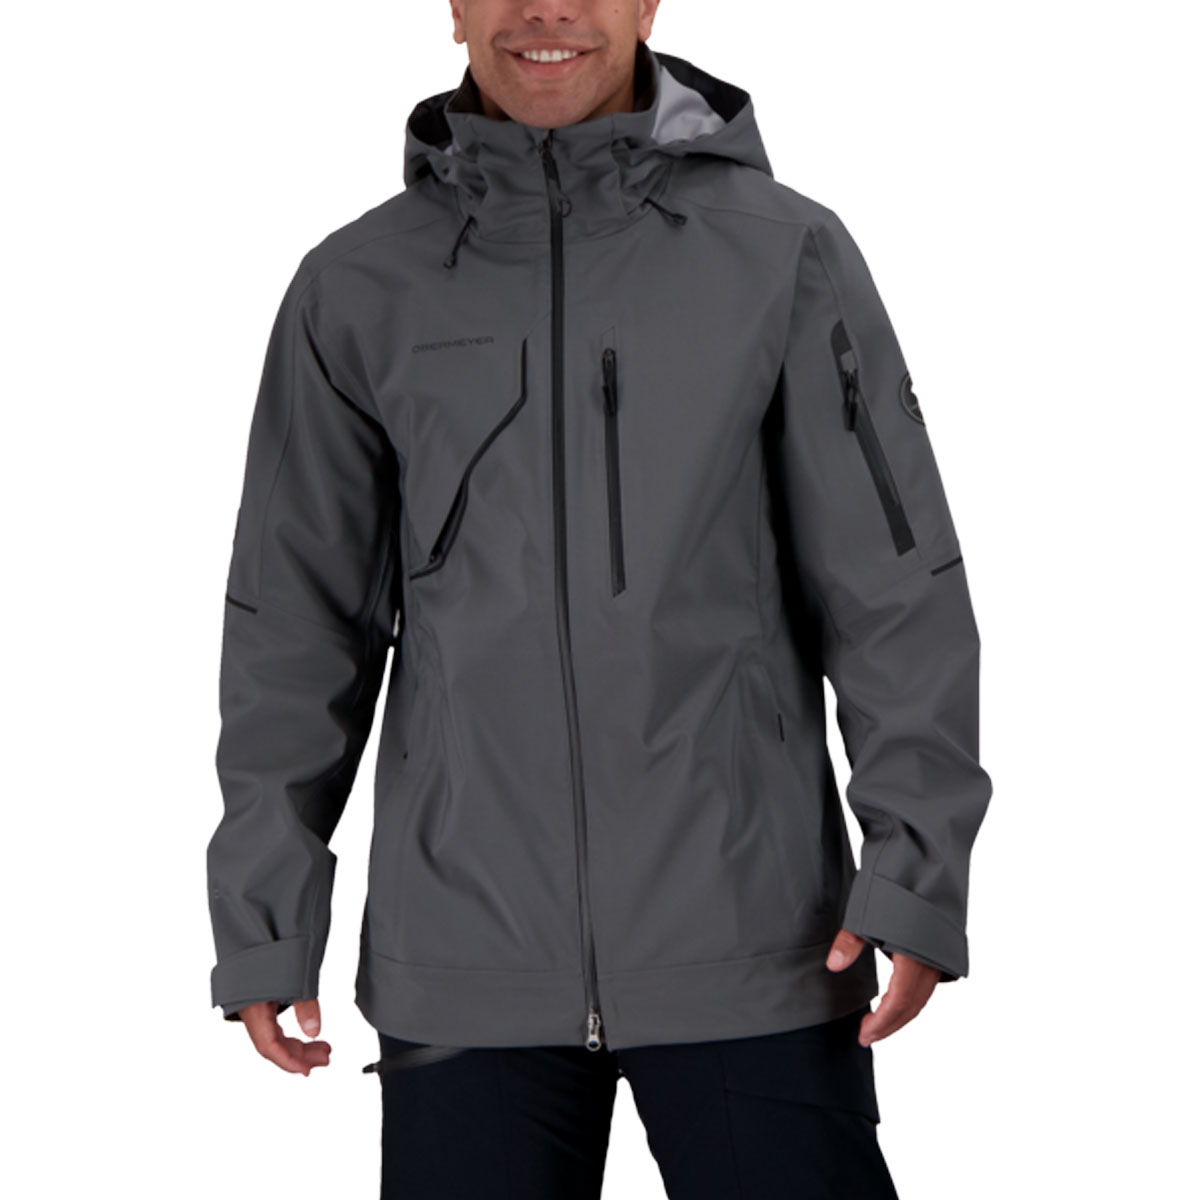 Obermeyer men's Foraker Shell Jacket in Coal front view